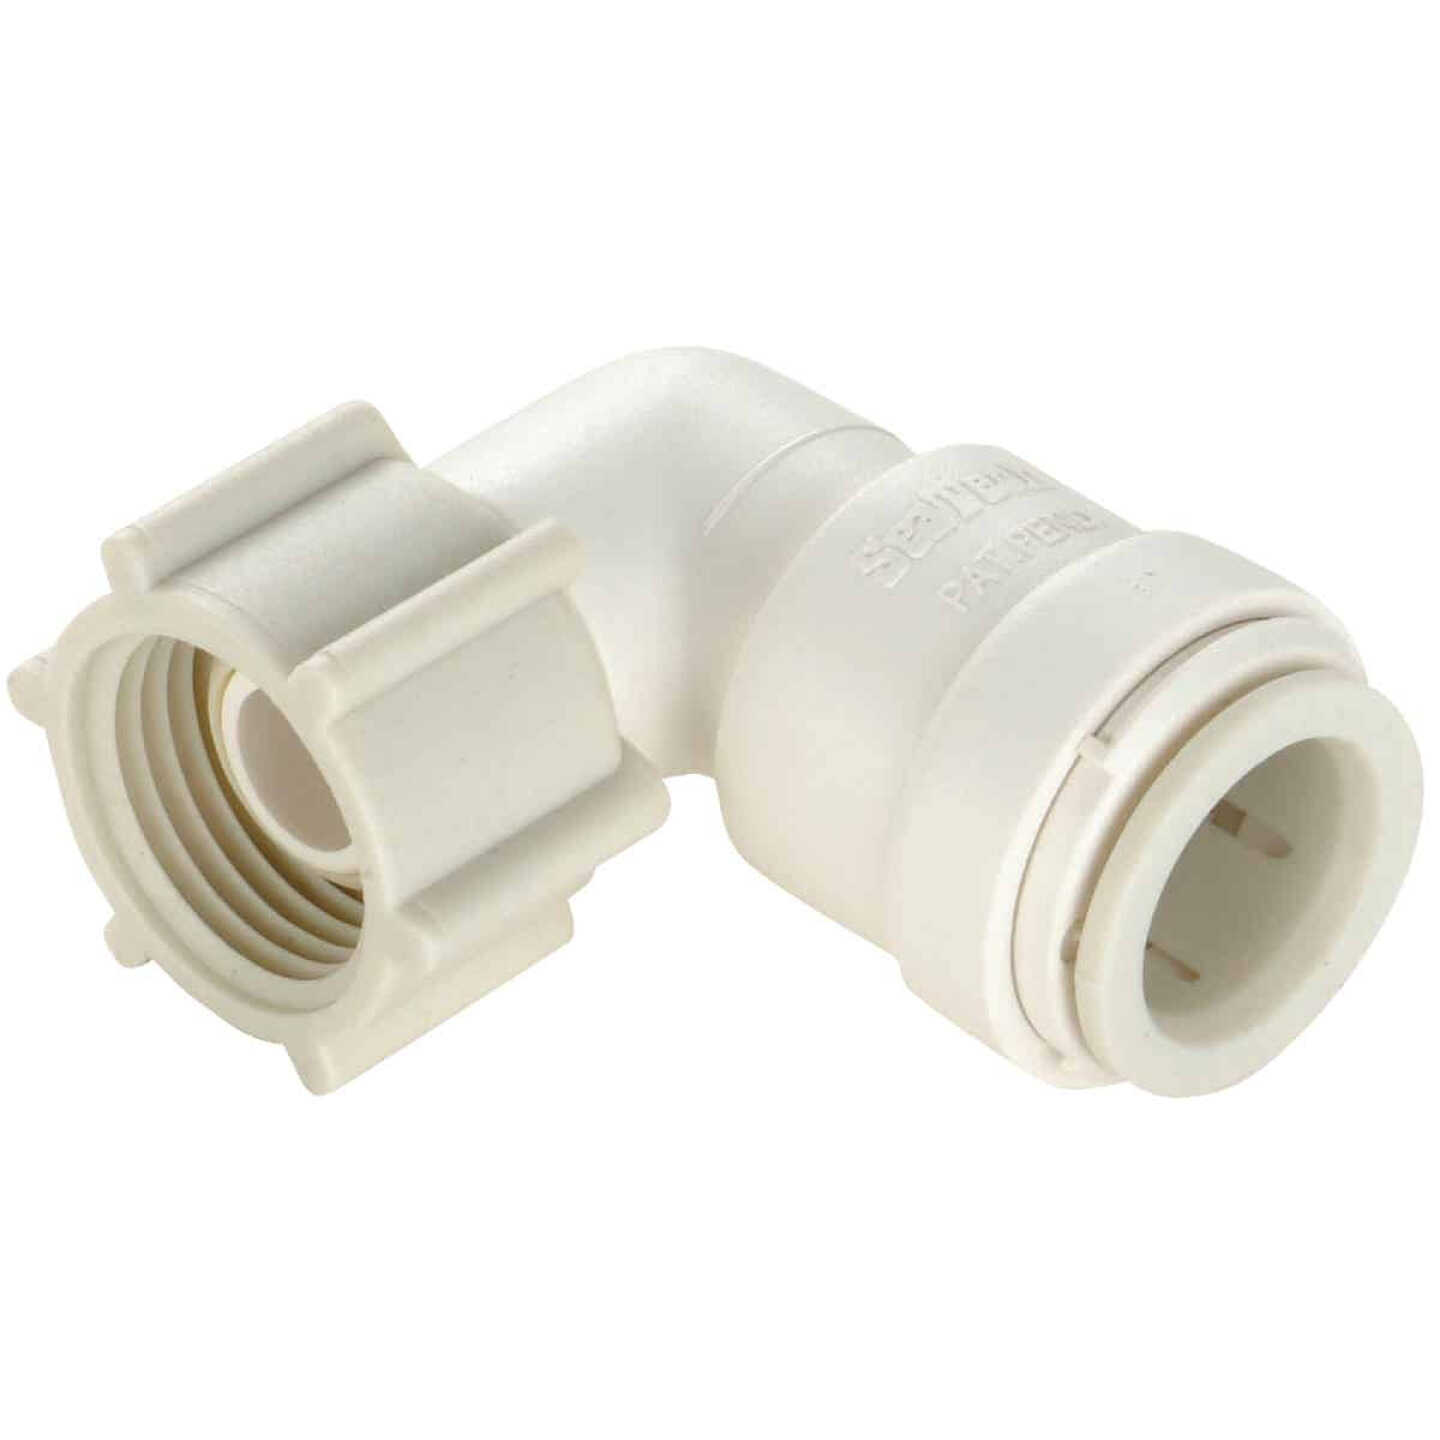 Watts 1/2 In. CTS x 3/4 In. FPT 90 Deg. Quick Connect Plastic Elbow (1/4 Bend) Image 1